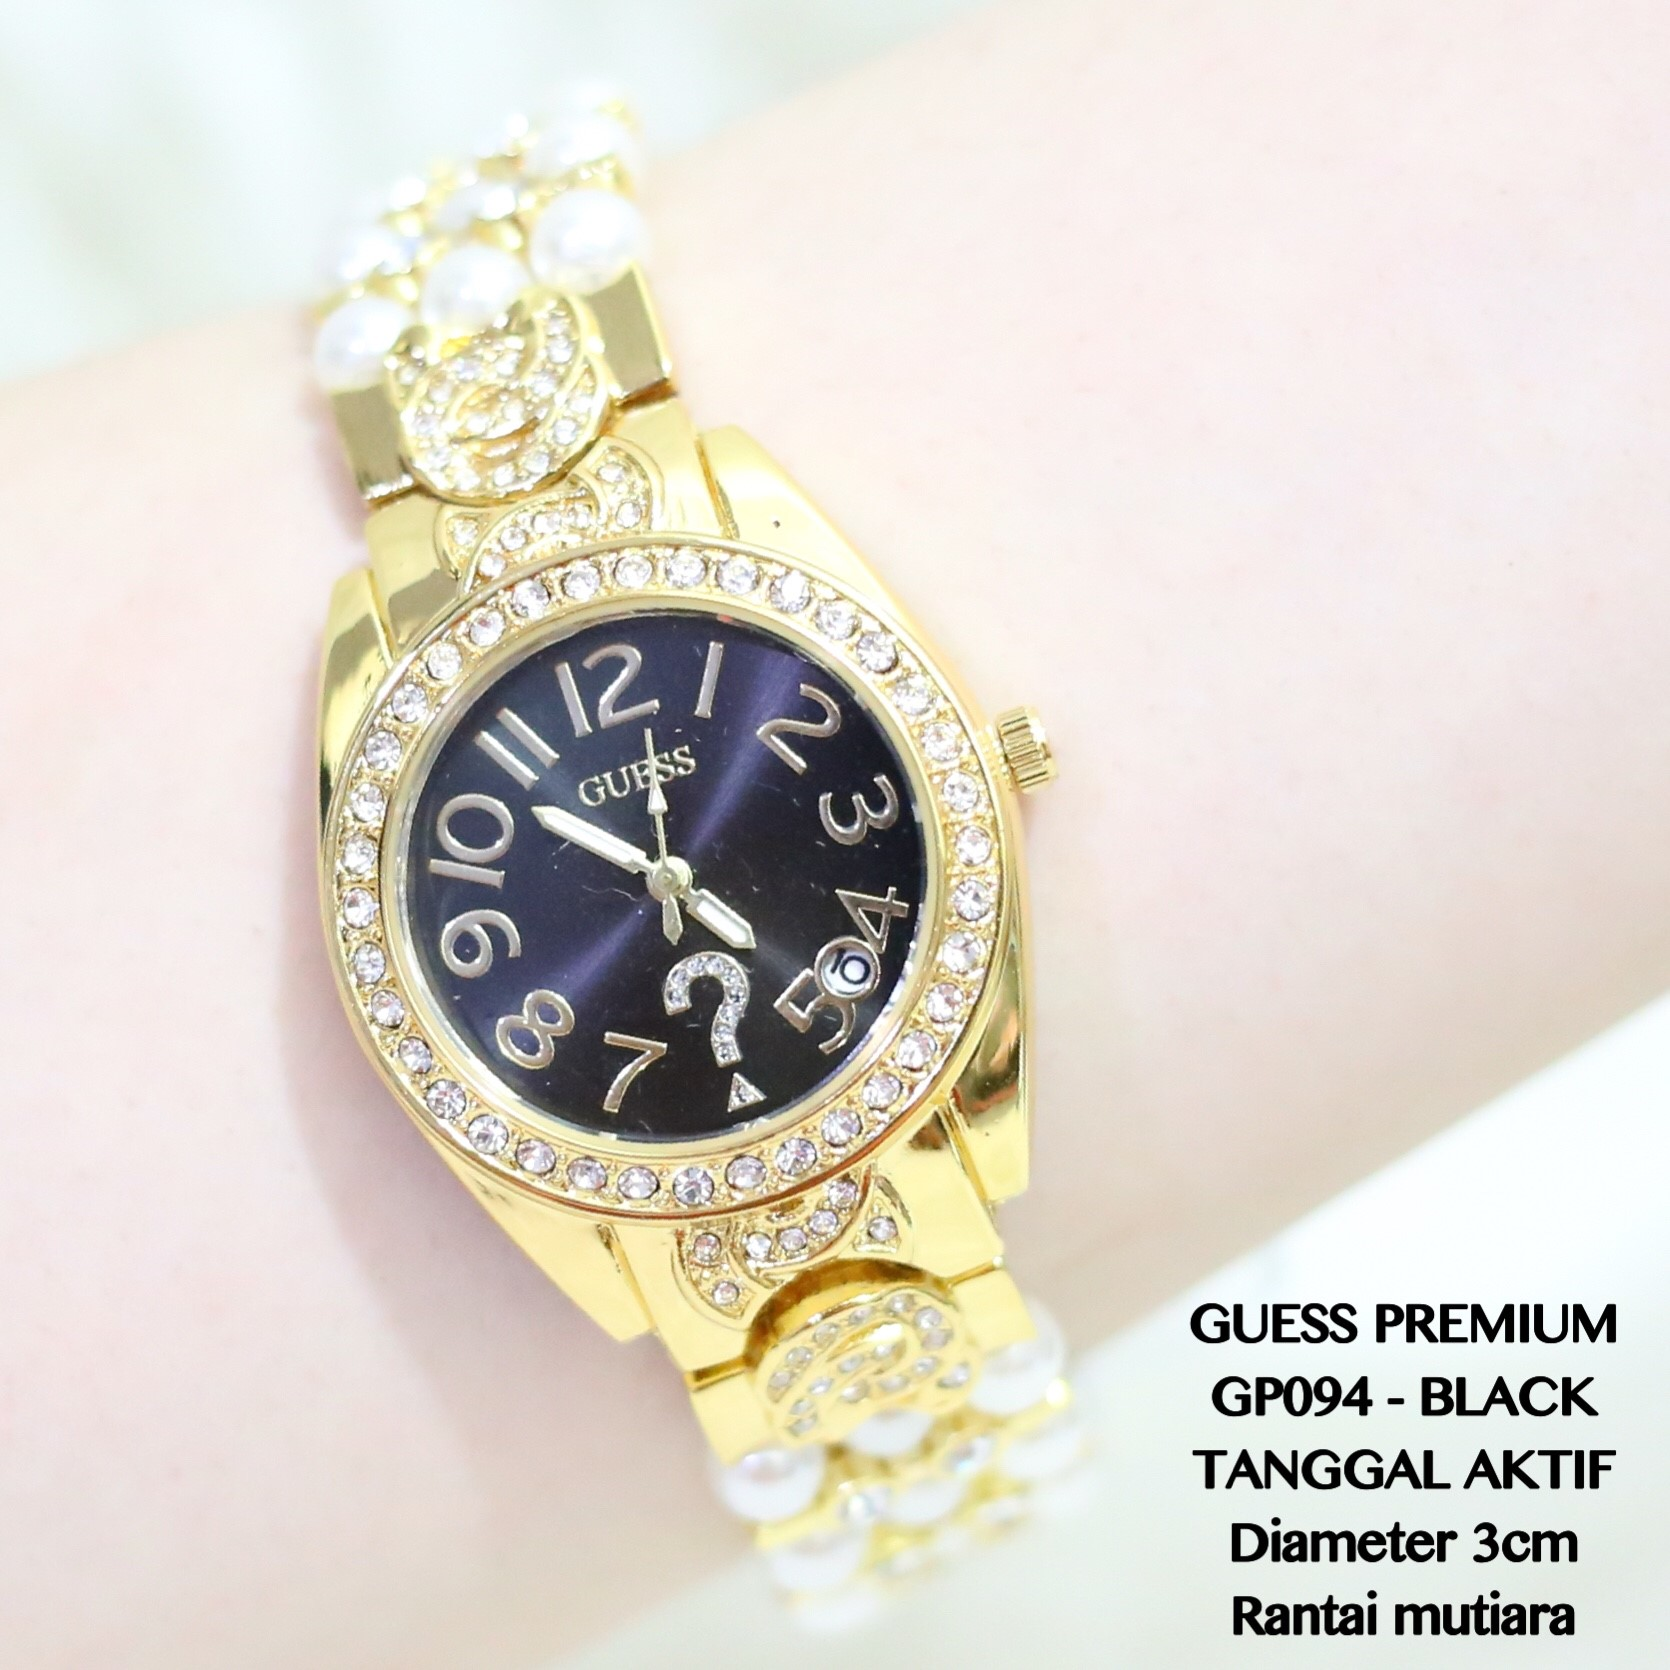 JAM TANGAN WANITA GUESS FASHION PERMATA RANTAI ROSE GOLD PESTA KADO